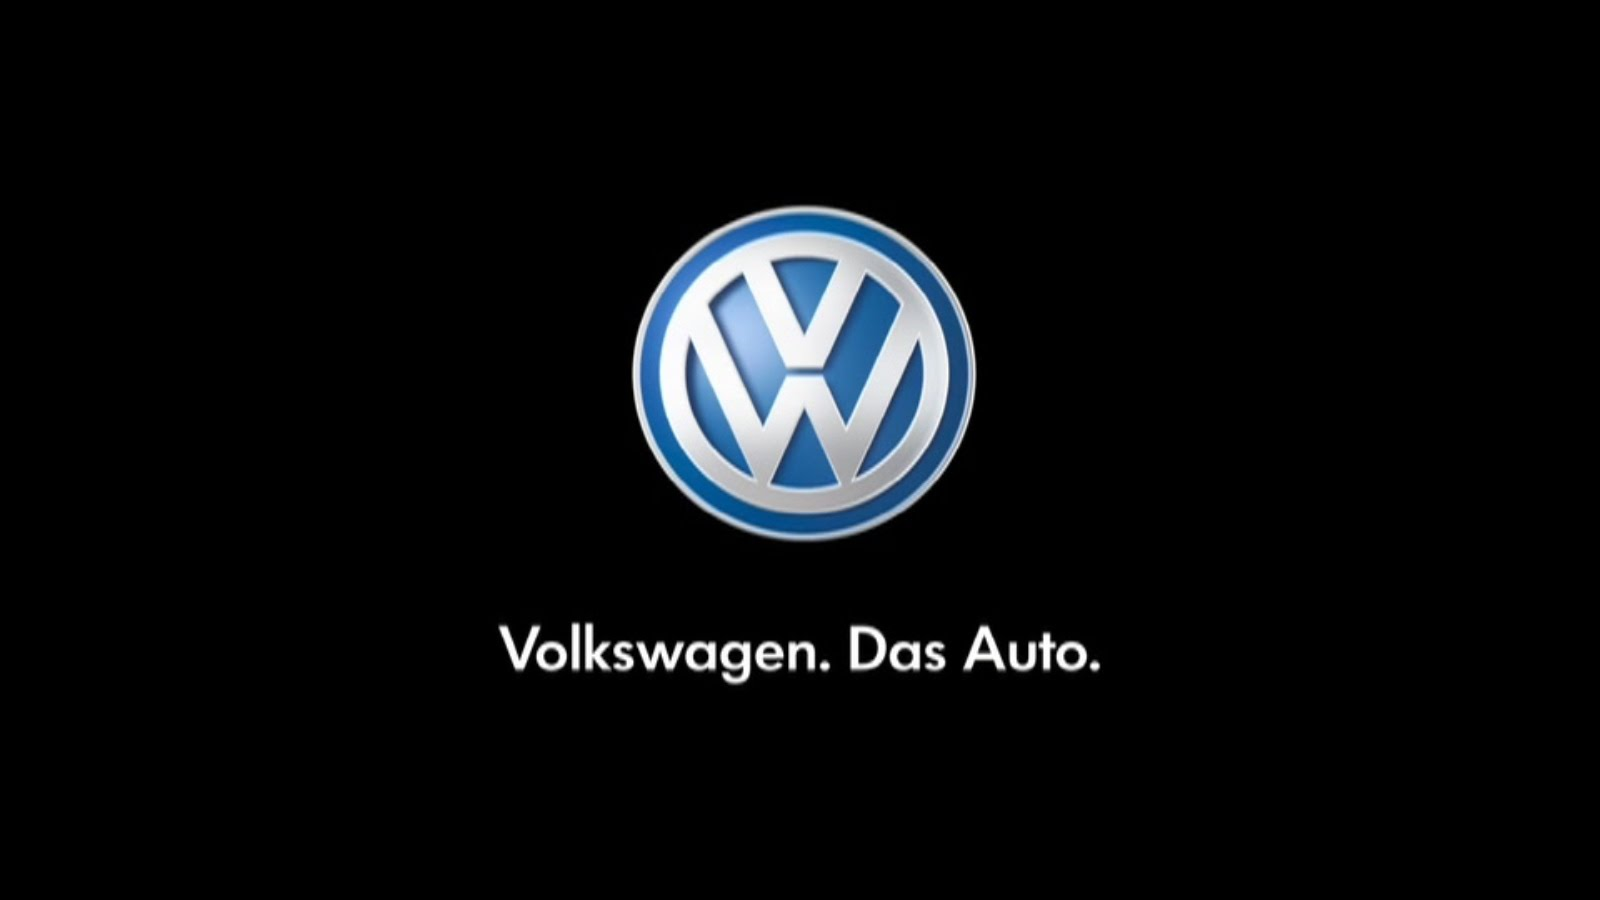 Volkswagen Logo Wallpaper 1600x900 80140